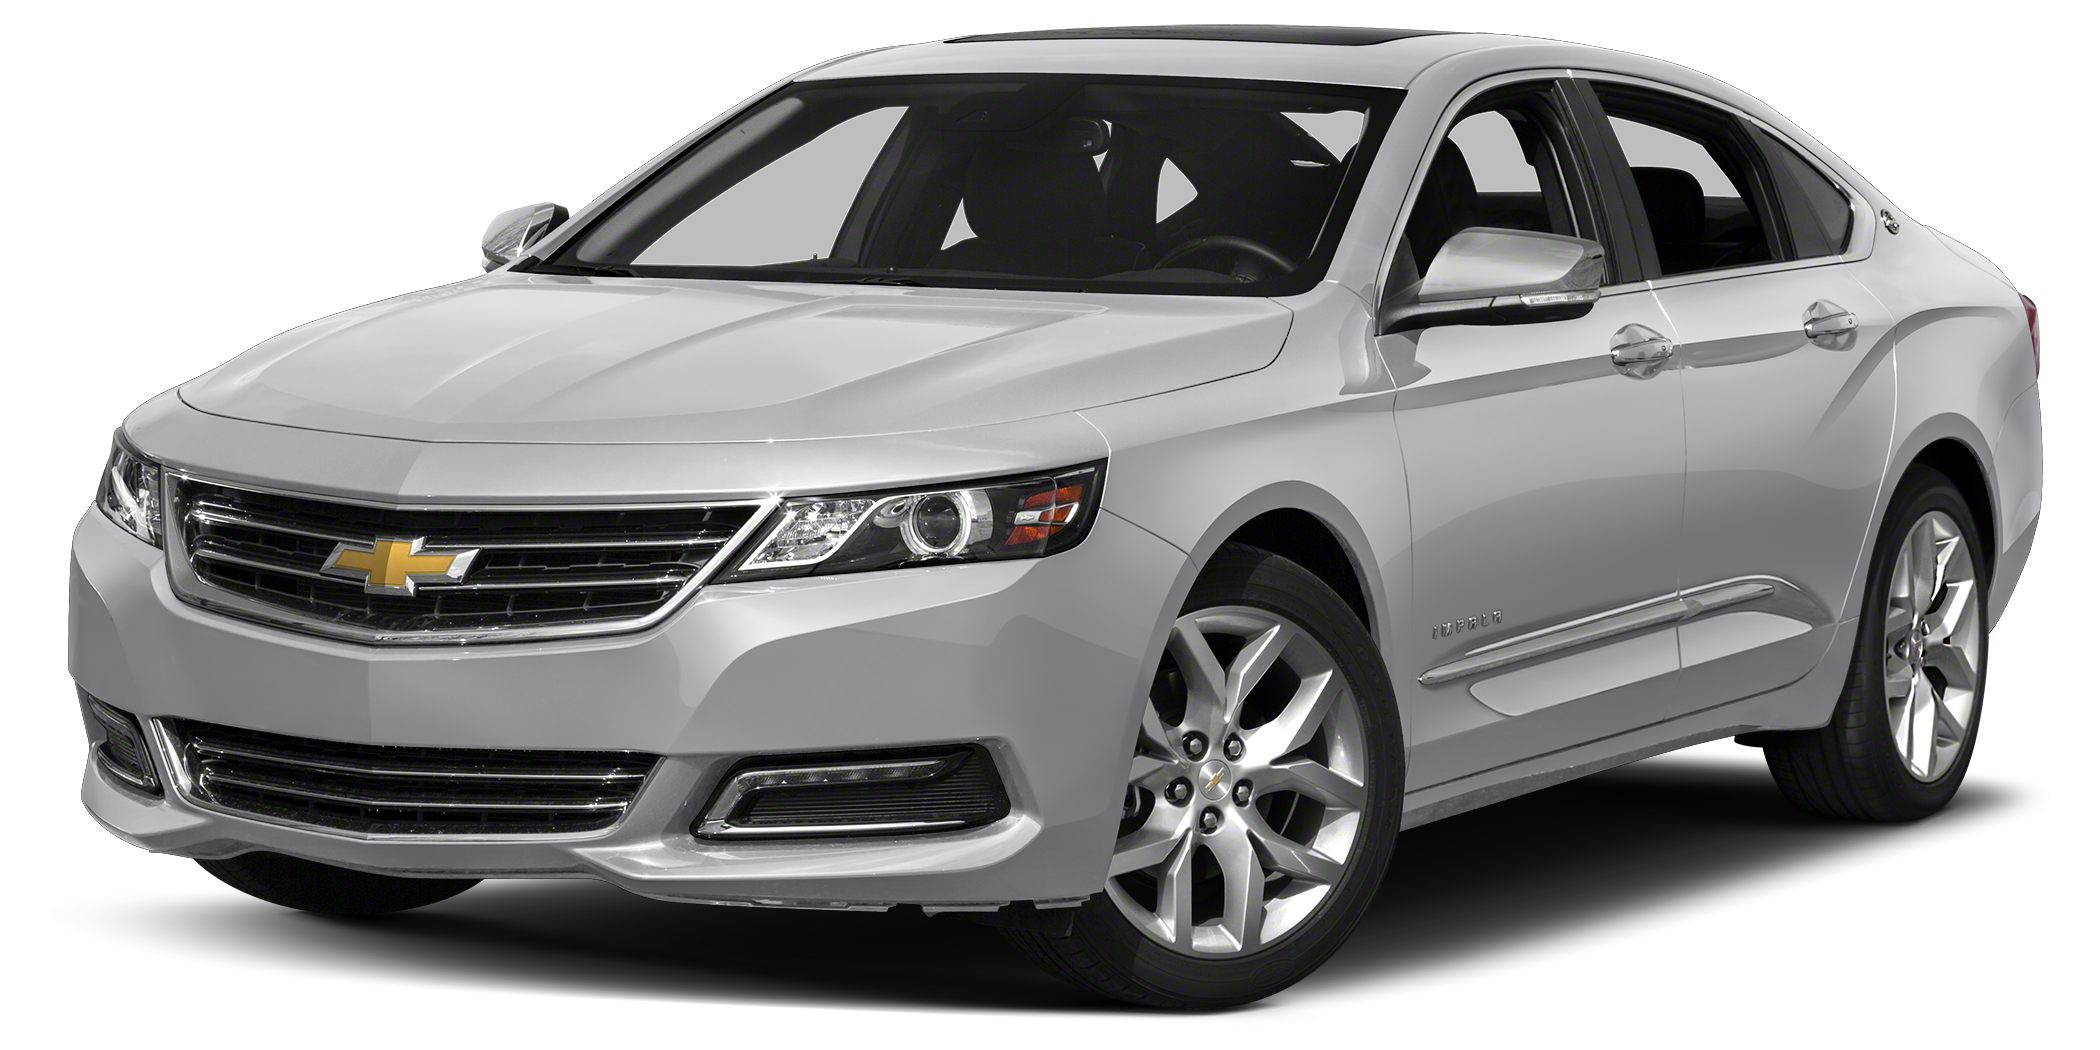 2017 Chevrolet Impala 2LZ CARFAX One-Owner Clean CARFAX Silver 2017 Chevrolet Impala Premier 2LZ